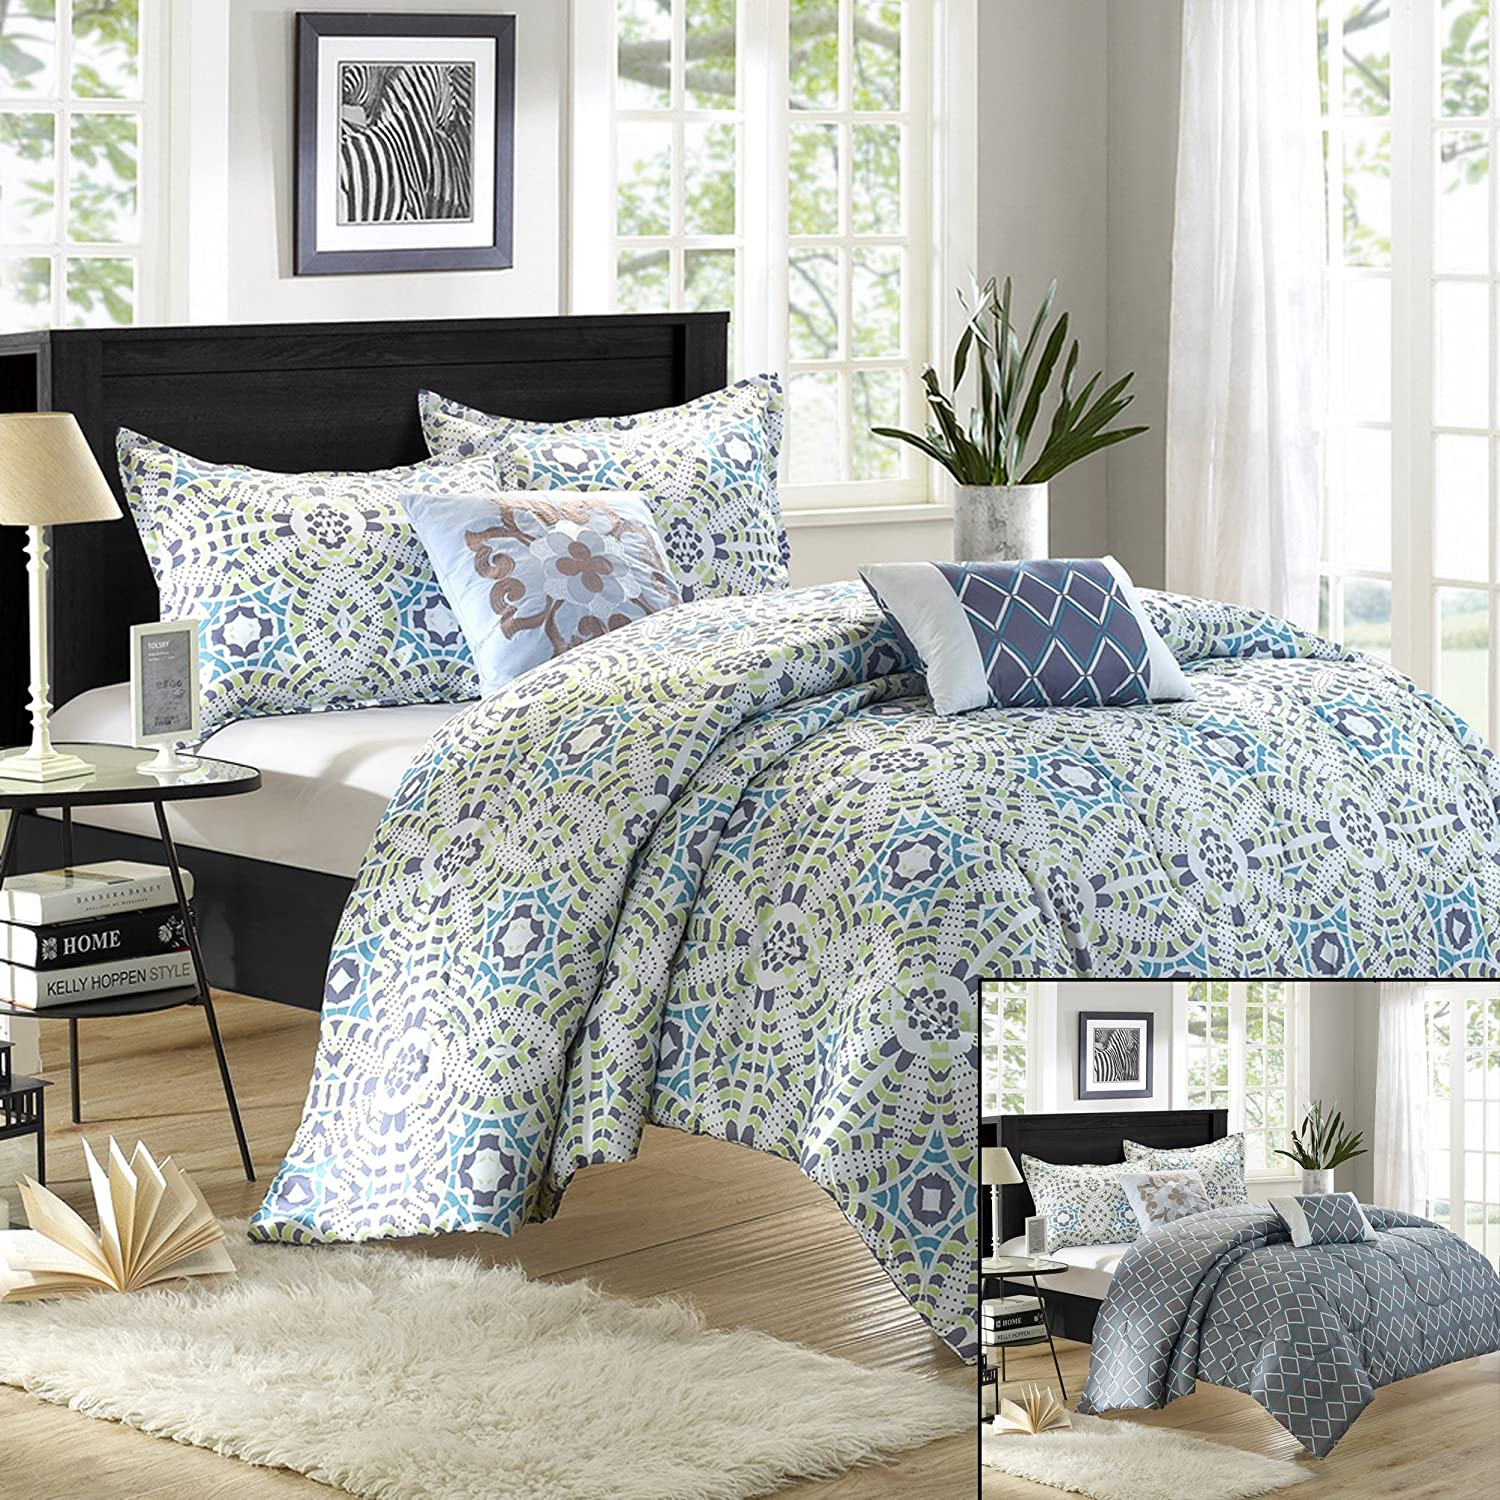 Chic Home Essence 5-Piece Luxury Reversible Comforter Set with Shams and Decorative Pillows, Queen Size, Printed